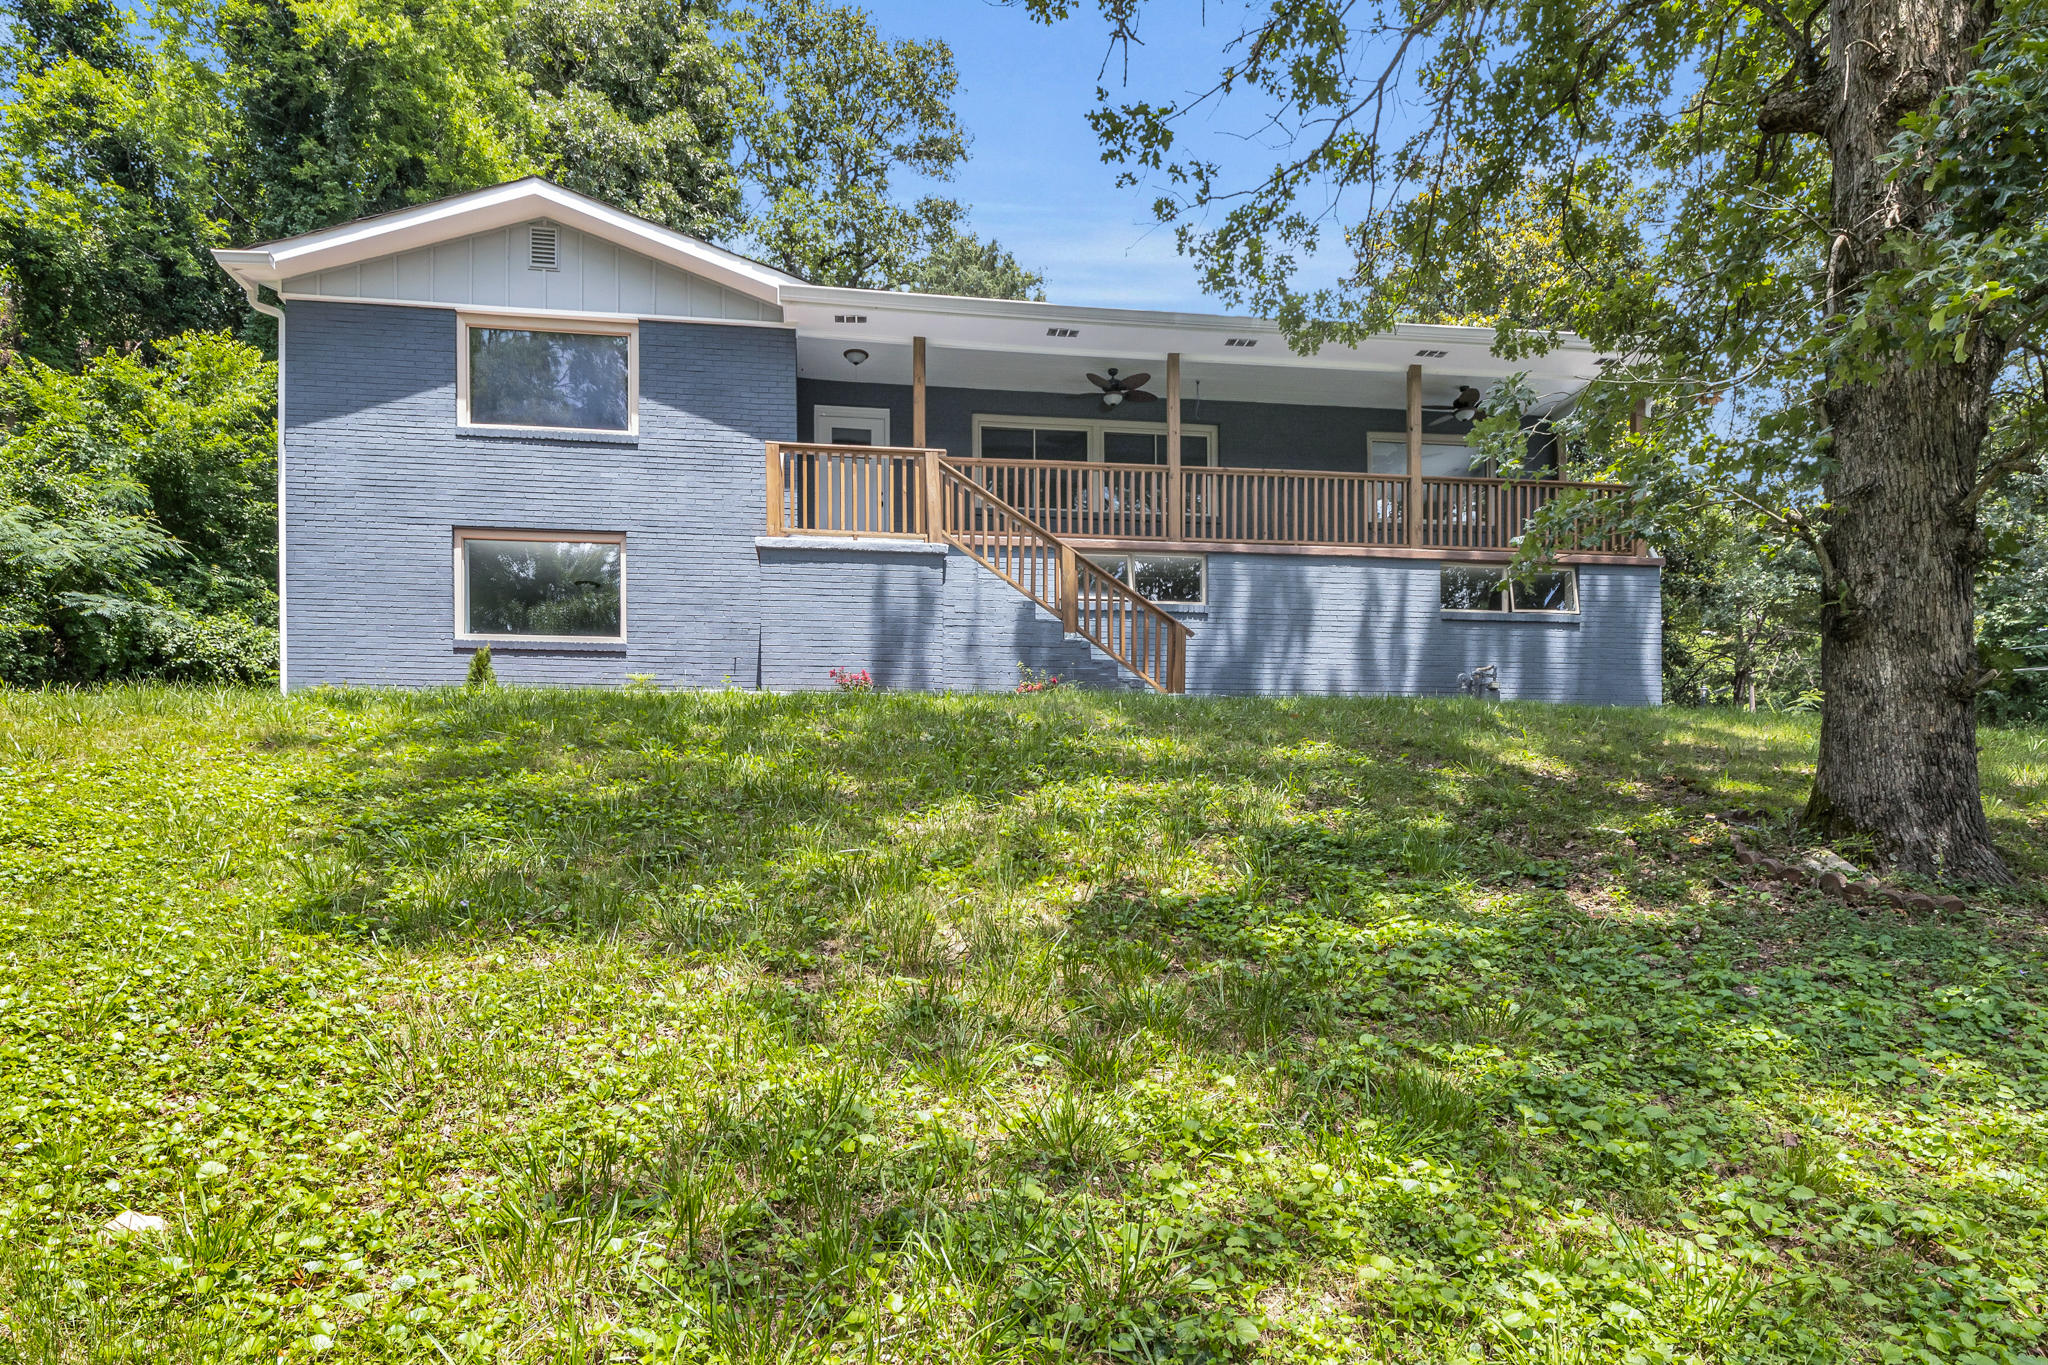 2400 N Crest  Rd, Chattanooga, Tennessee